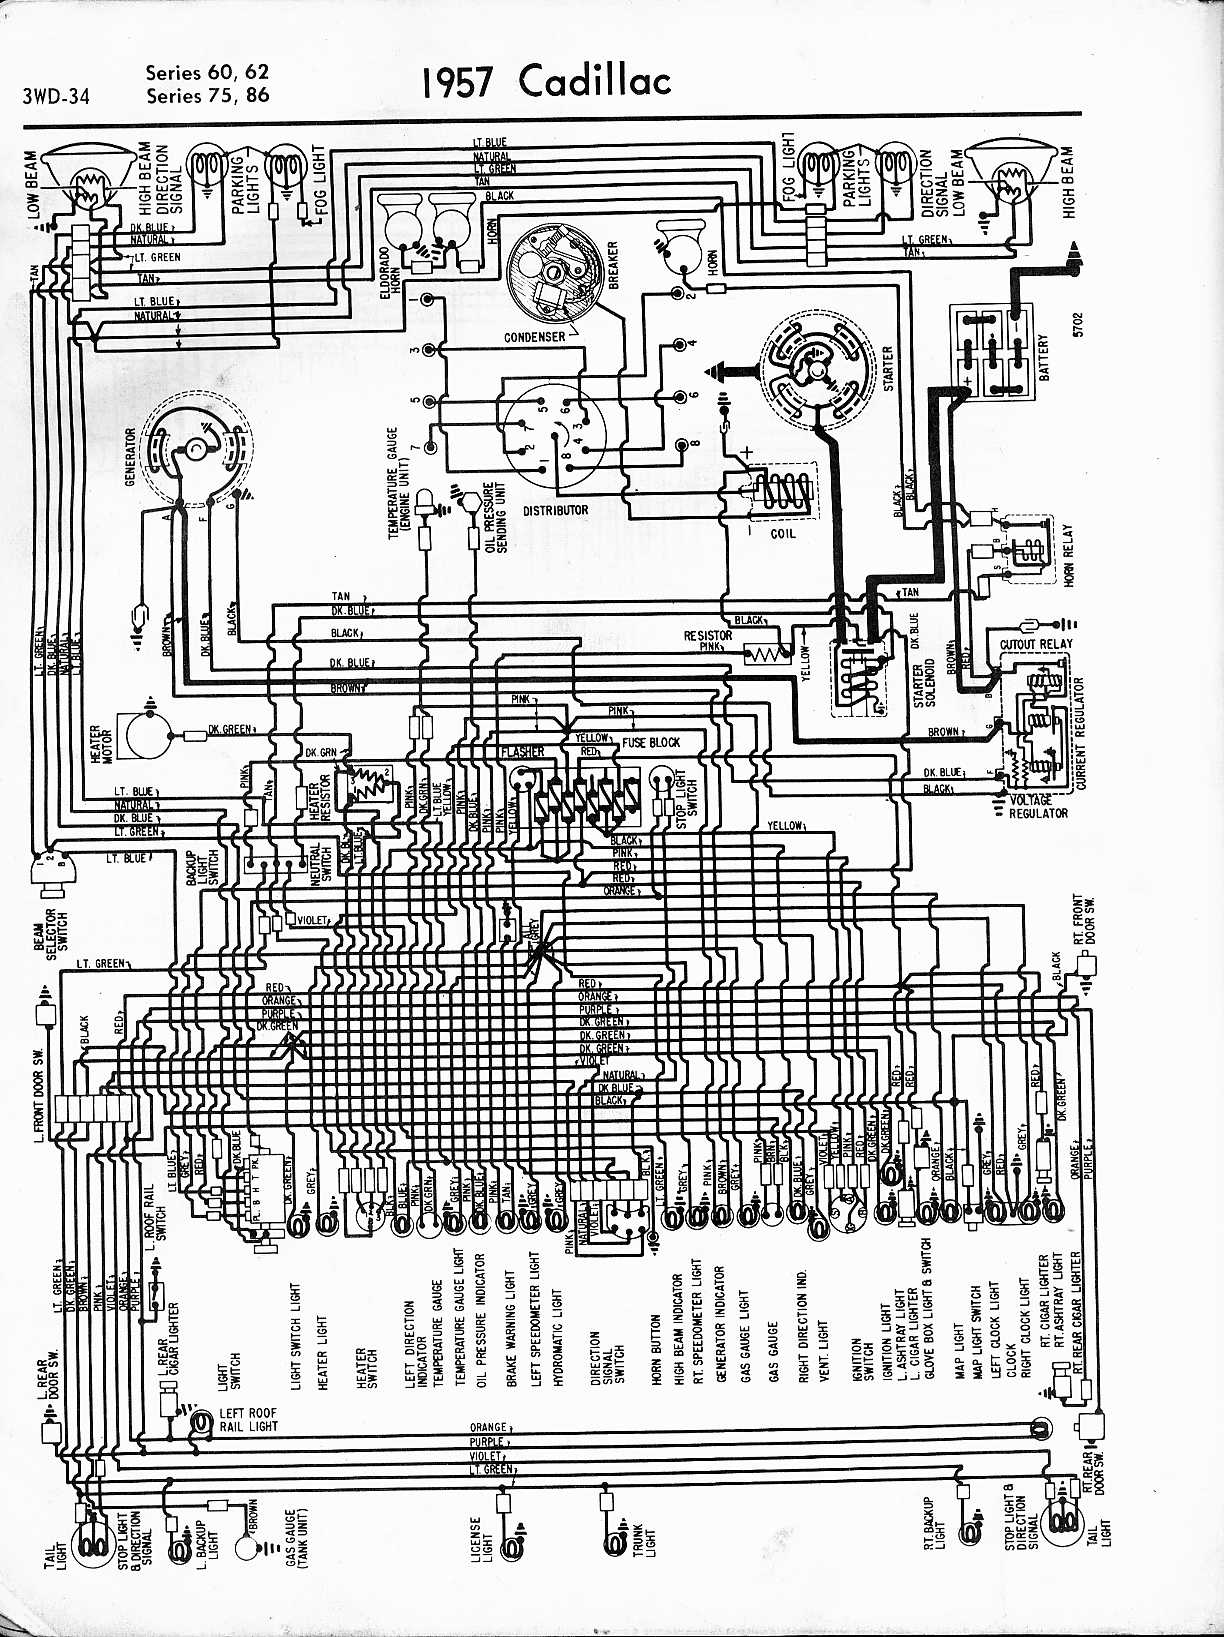 1955 cadillac wiring diagram trusted wiring diagrams u2022 rh sivamuni com